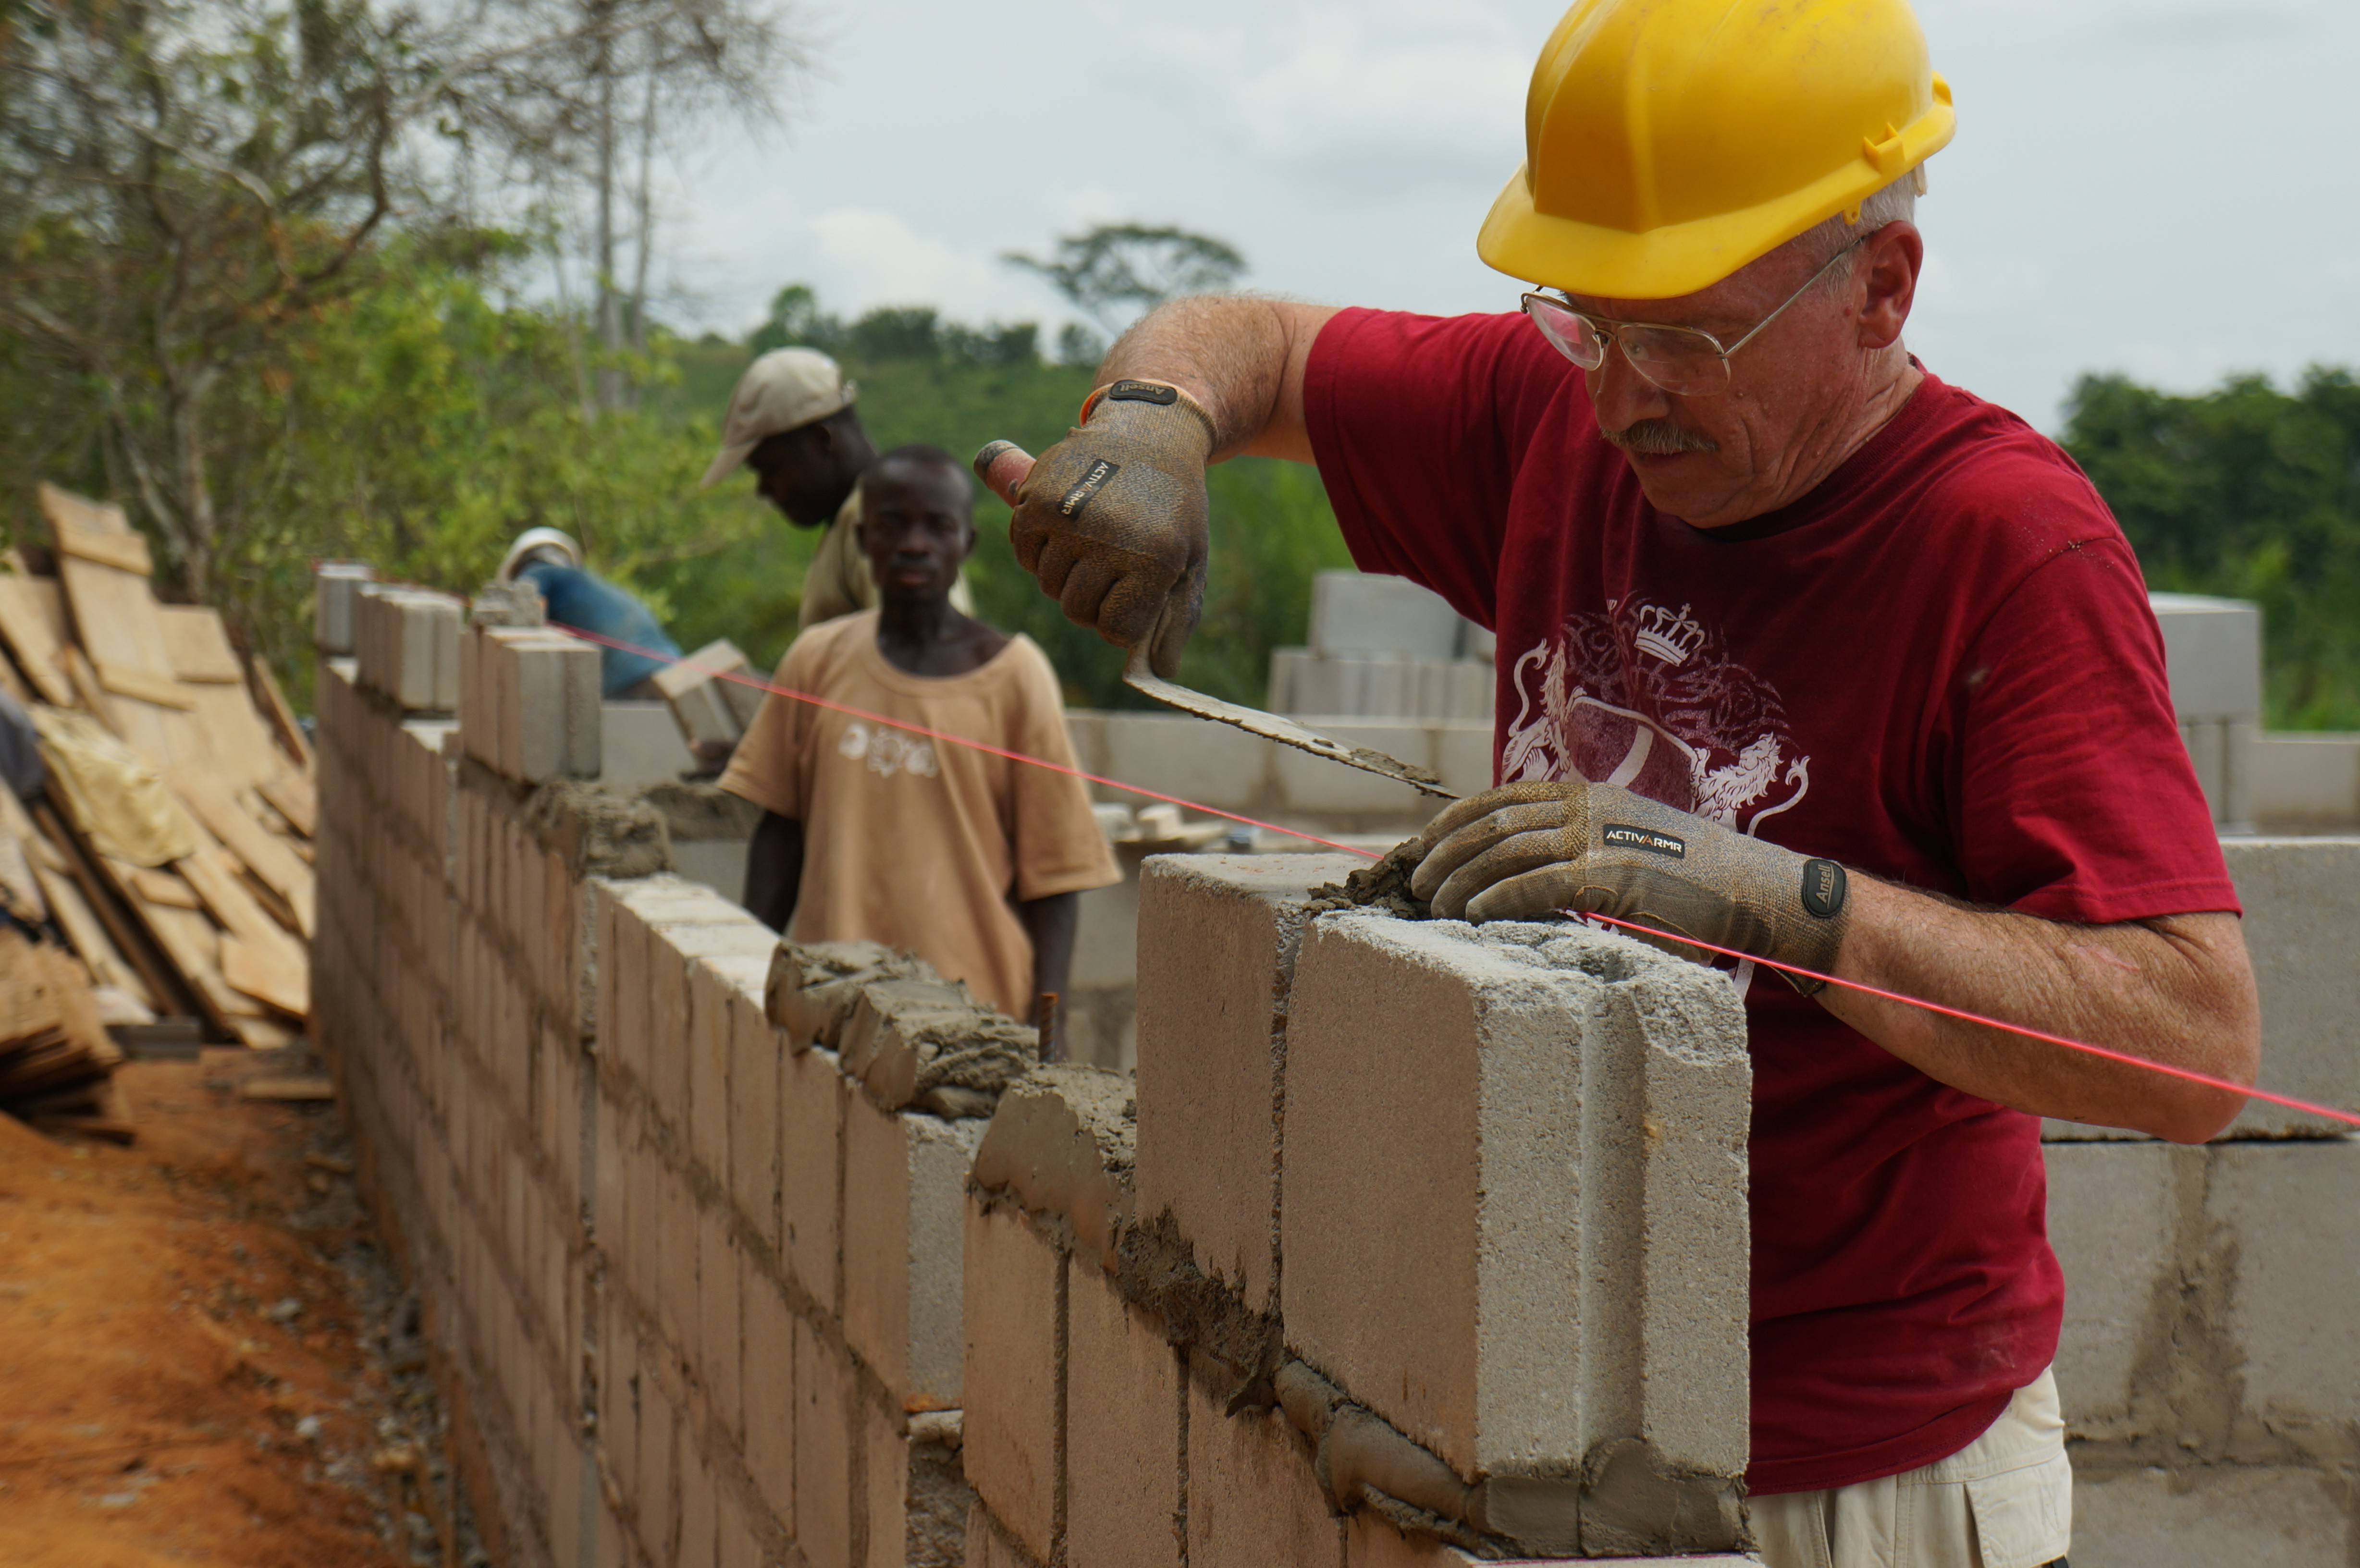 Mac Gregory of Elgin, a volunteer with Elgin-based Two Pennies Ministry, helps build an orphanage in the Cape Coast region of Ghana. The project is supported by sixth-grade gifted students of Sycamore Trails Elementary School in Bartlett.